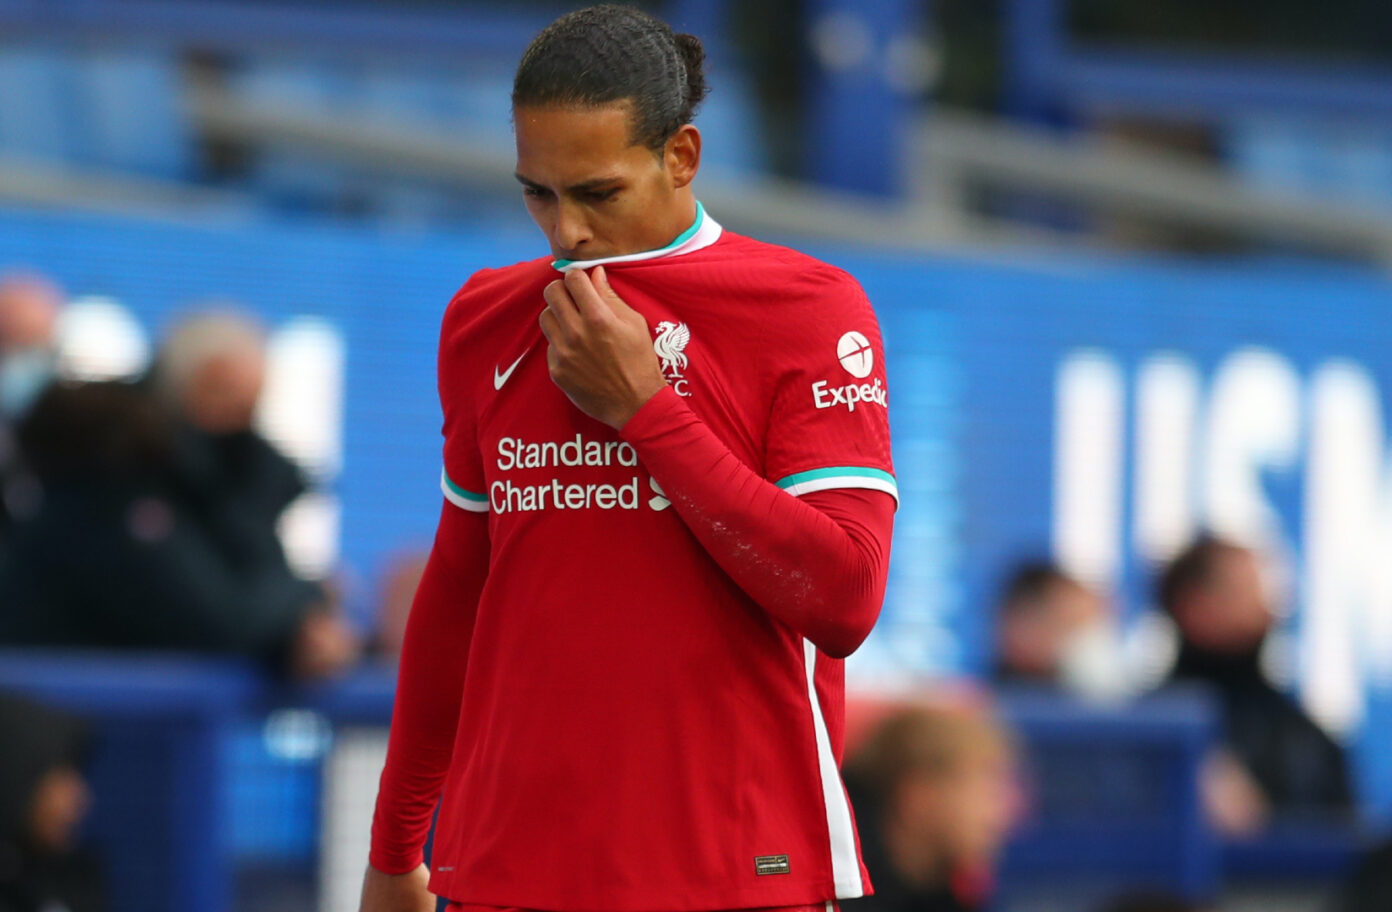 Liverpool confirm Virgil van Dijk will undergo surgery after suffering ACL damage